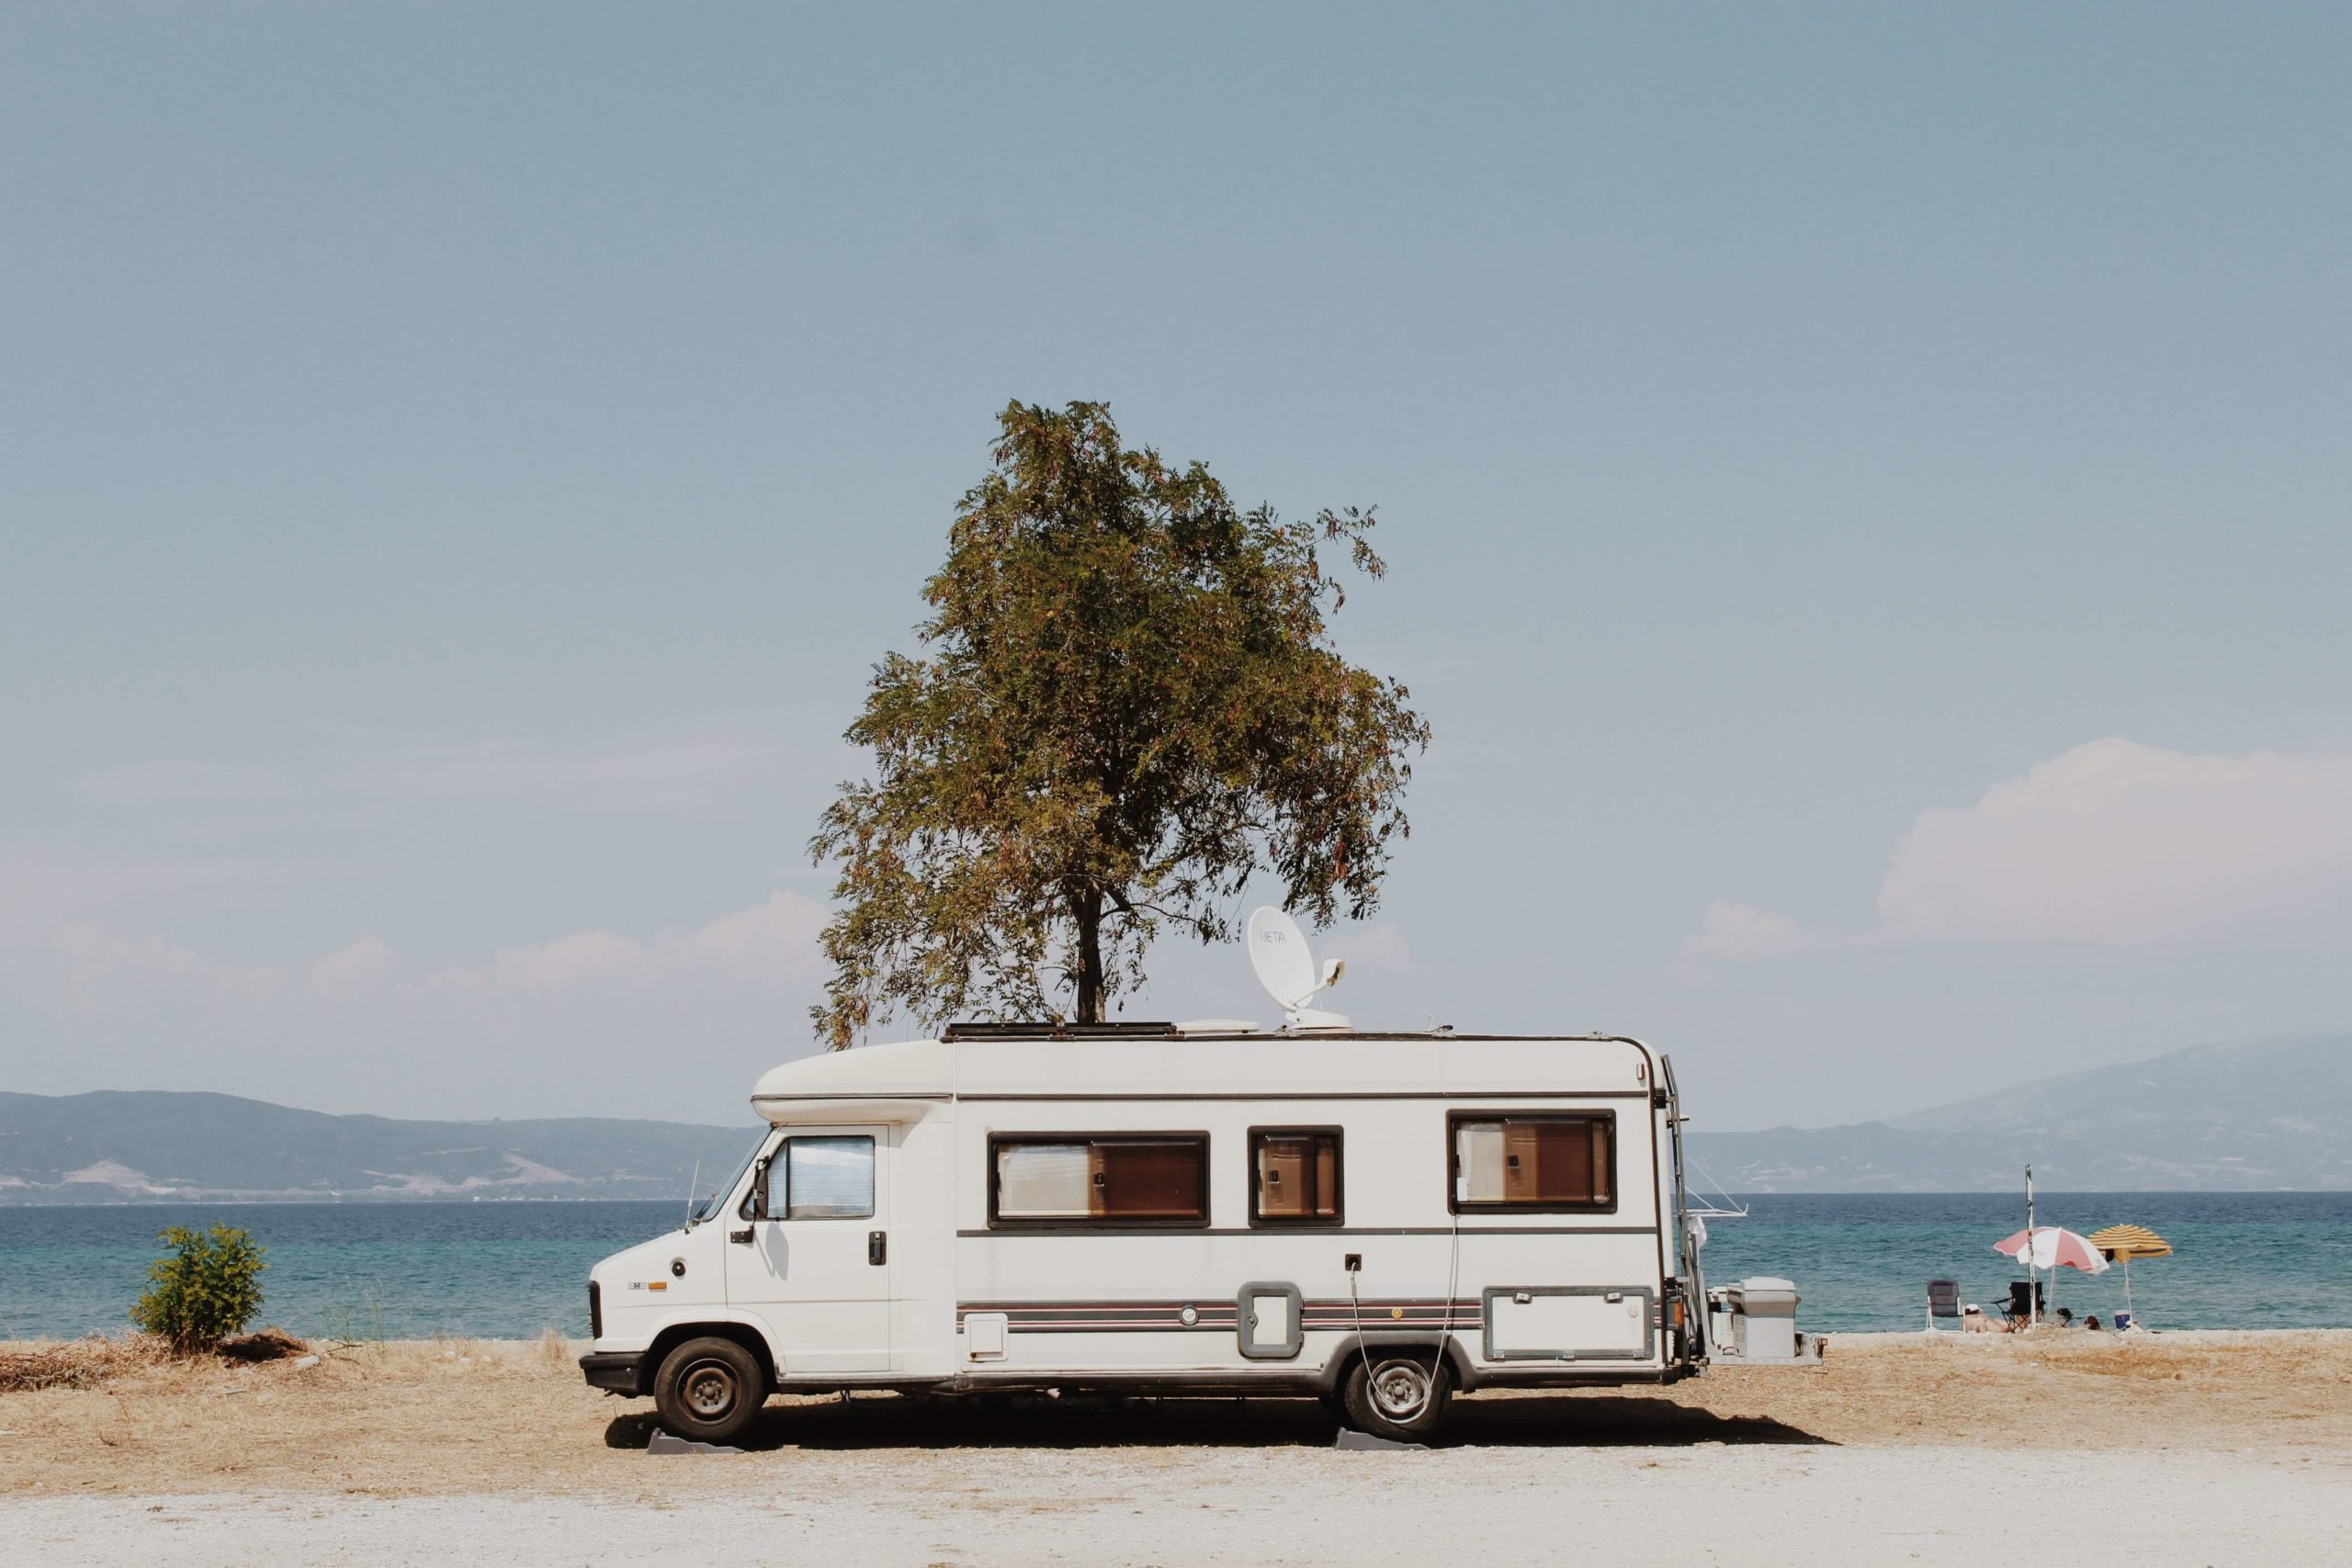 RV Rental: You Only Pay for What You Need